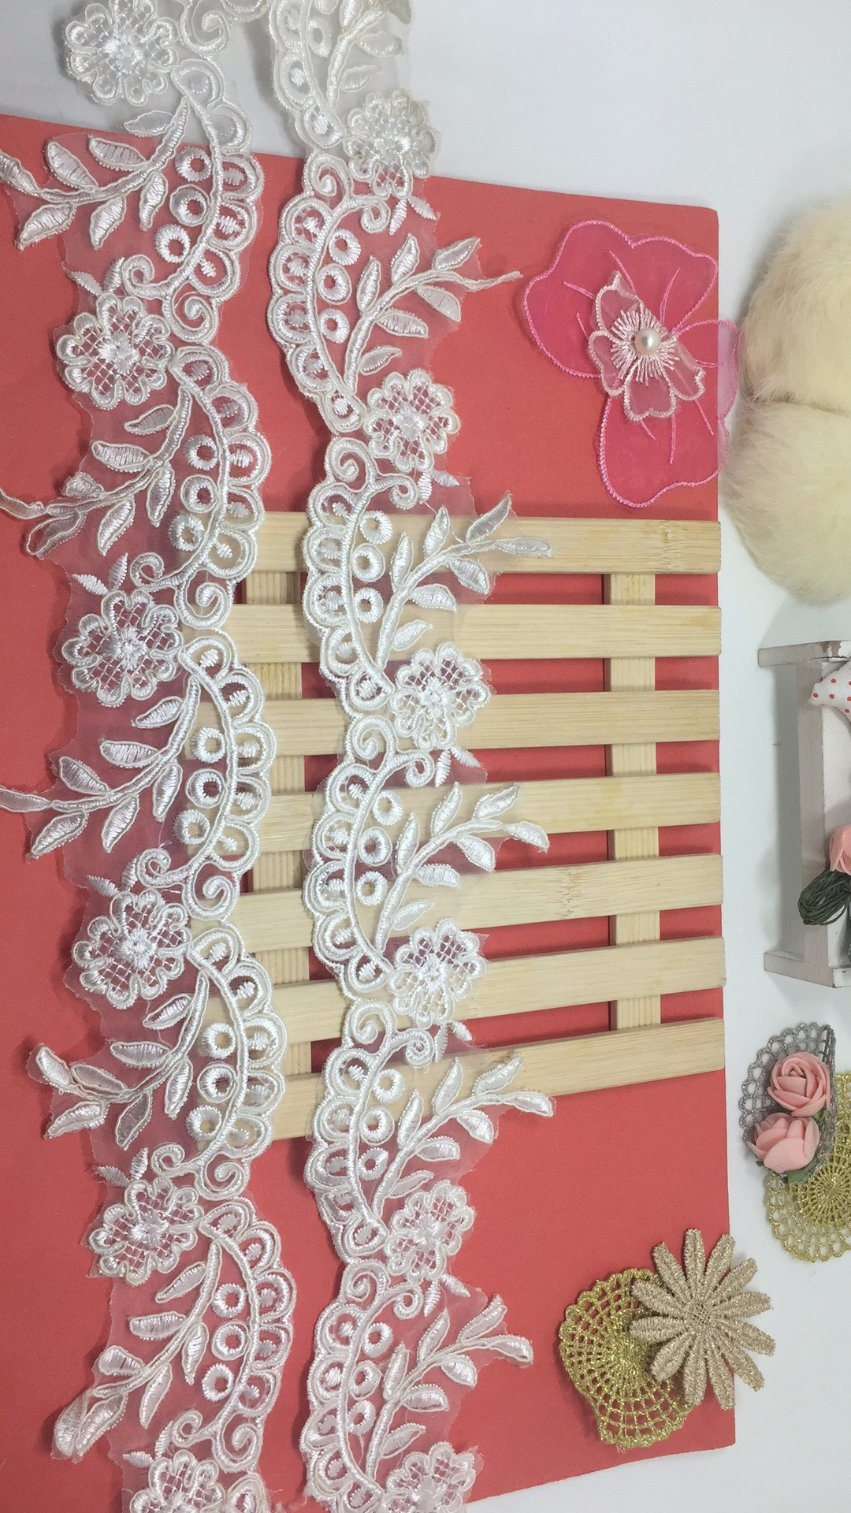 Factory Stock Wholesale 7.5cm Width Guipure Embroidery Trimming Net Lace for Garments & Home Textiles & Curtains